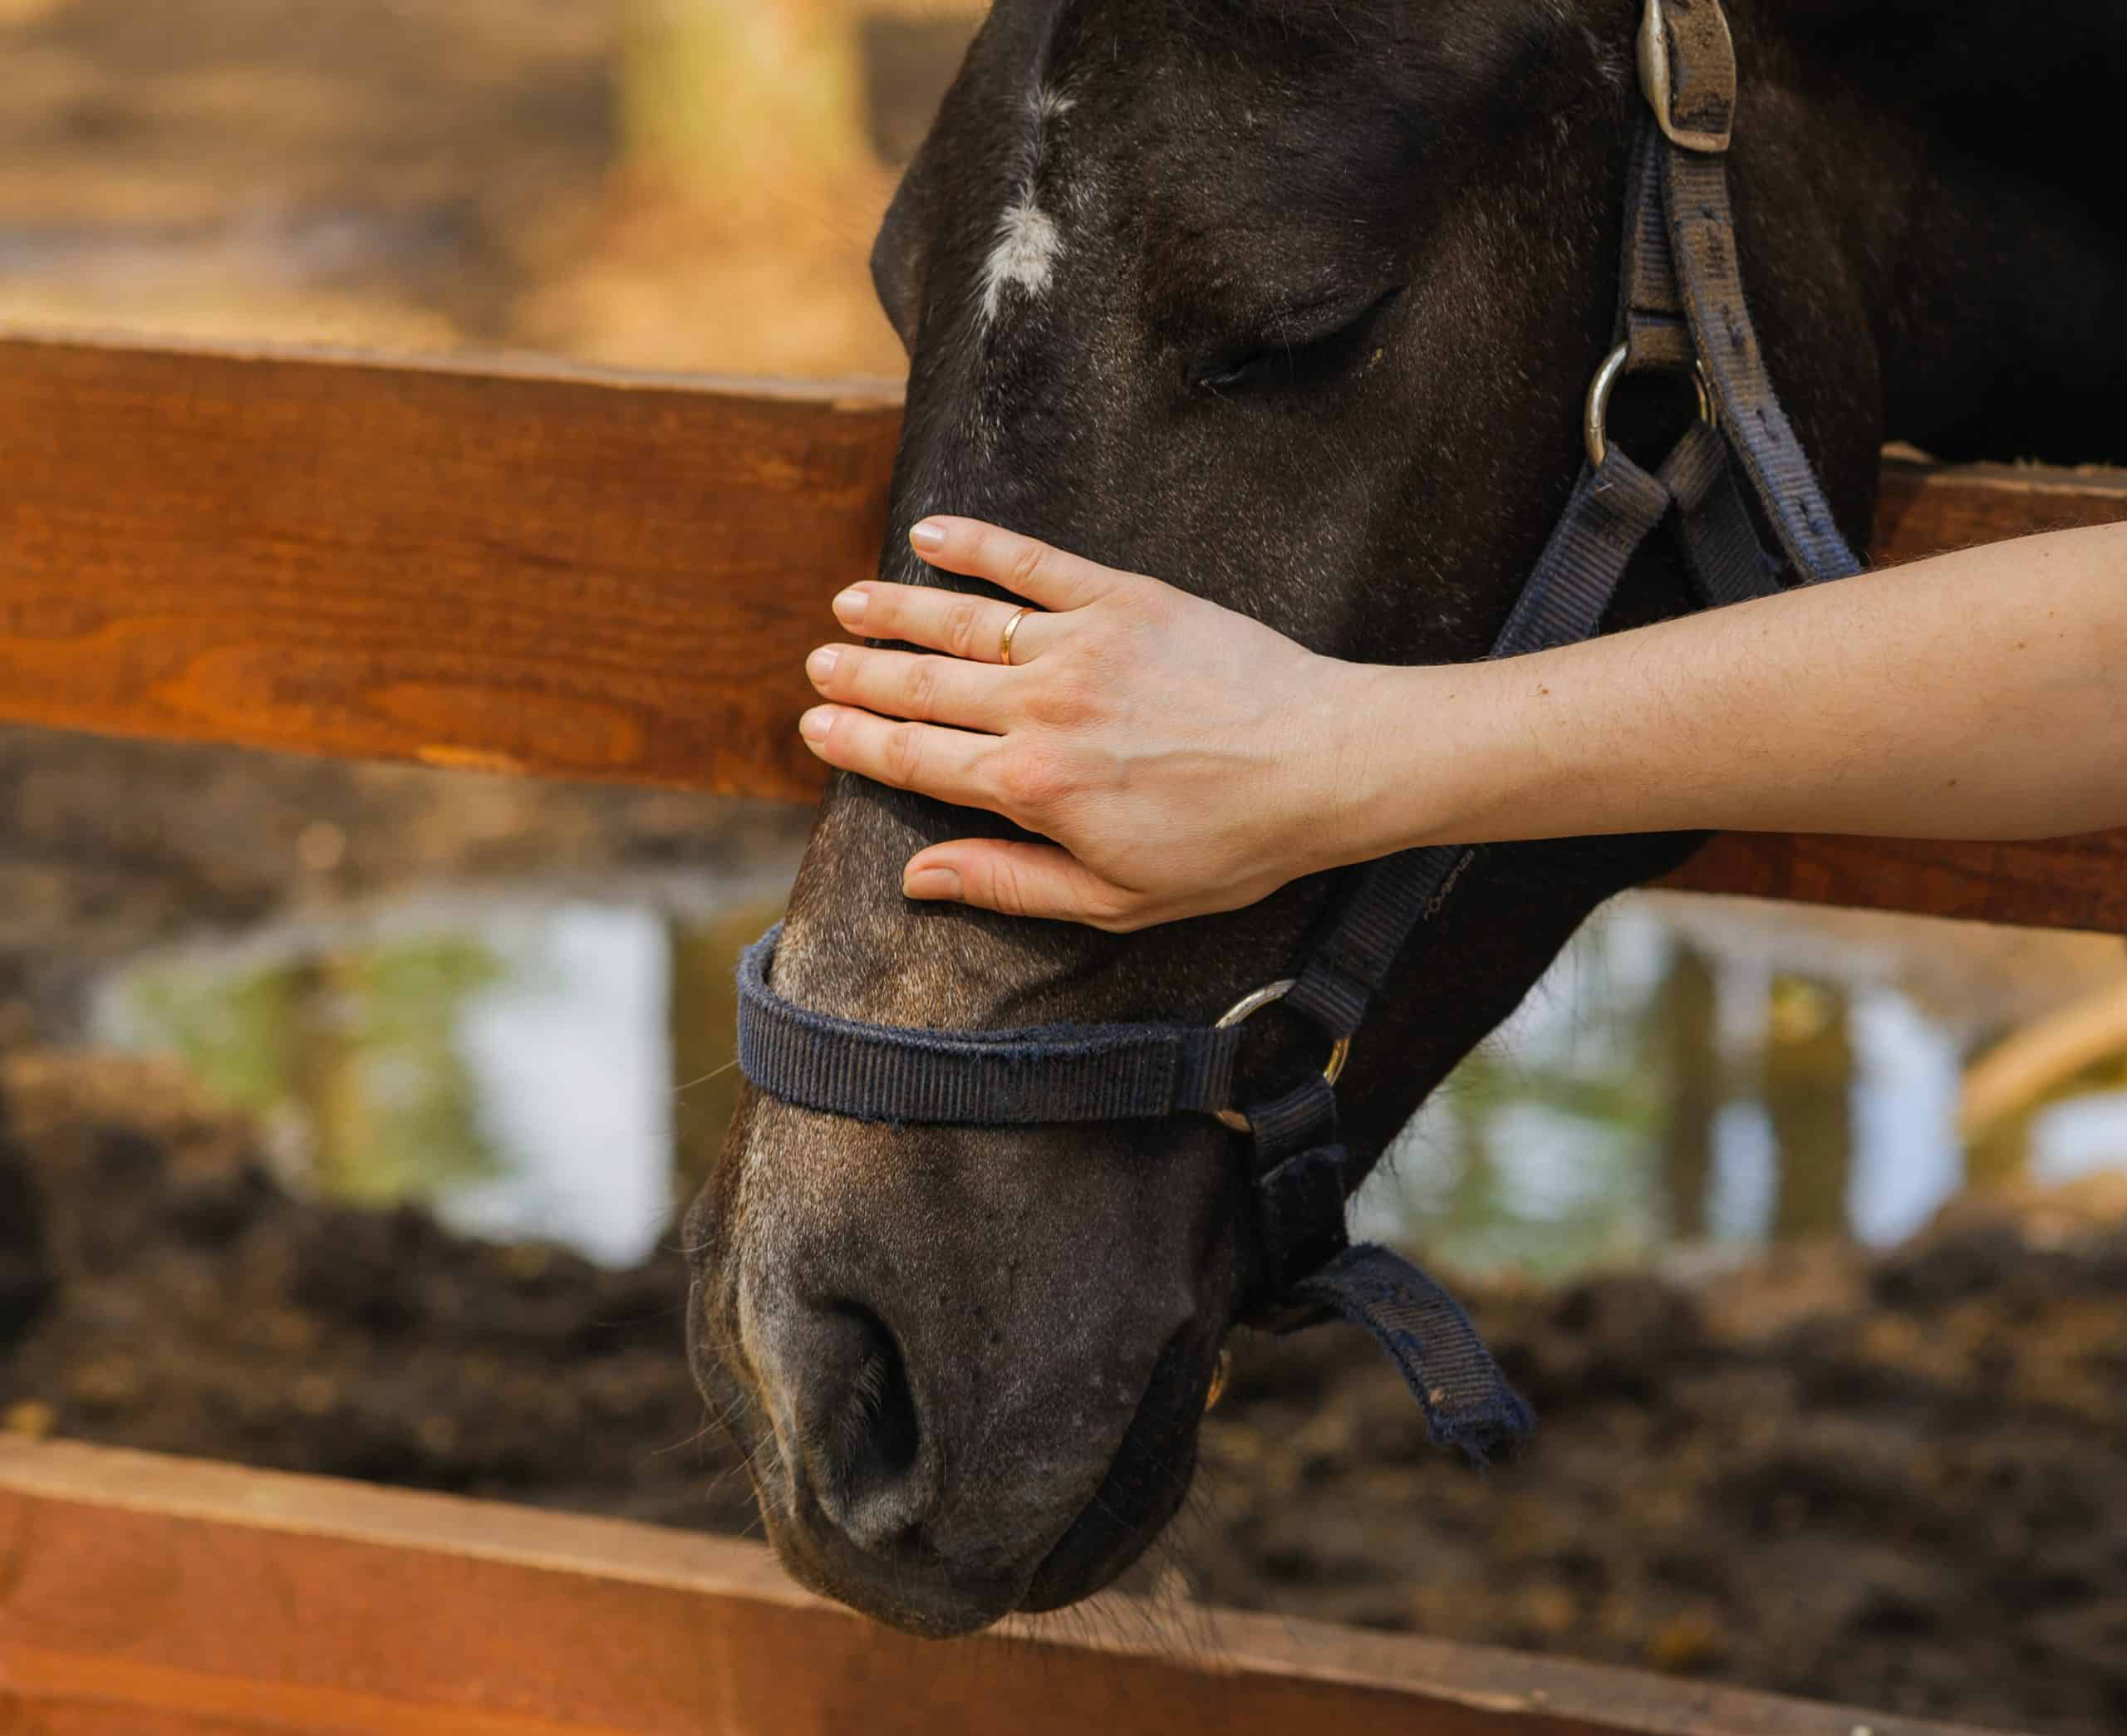 woman hand caress pet equine